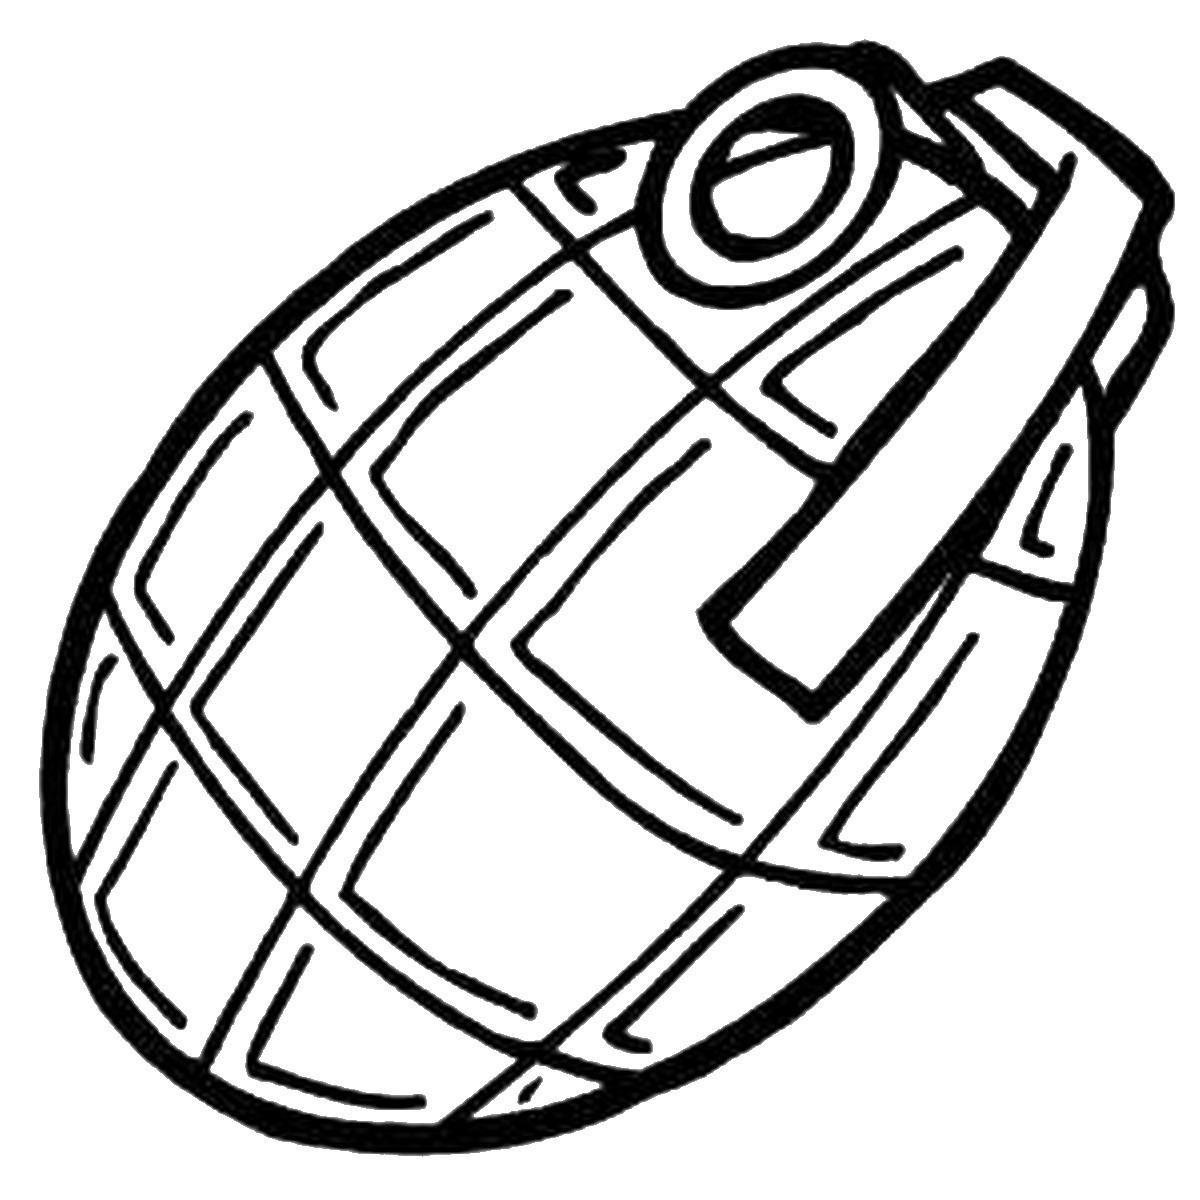 army coloring pictures army coloring pages pictures army coloring 1 1